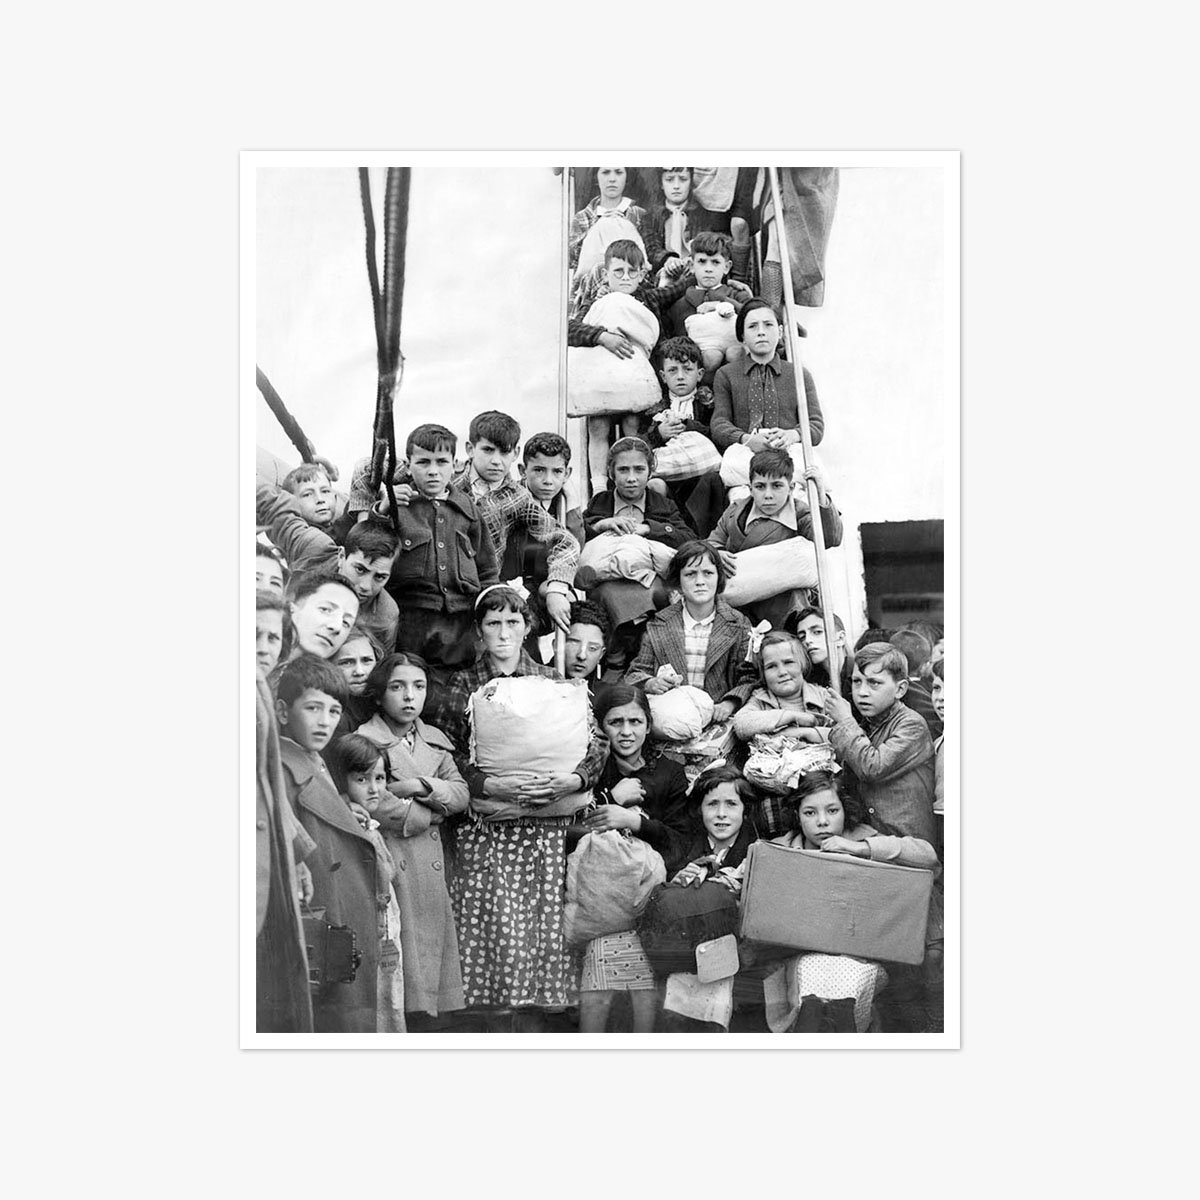 Basque refugees by Frank Rust